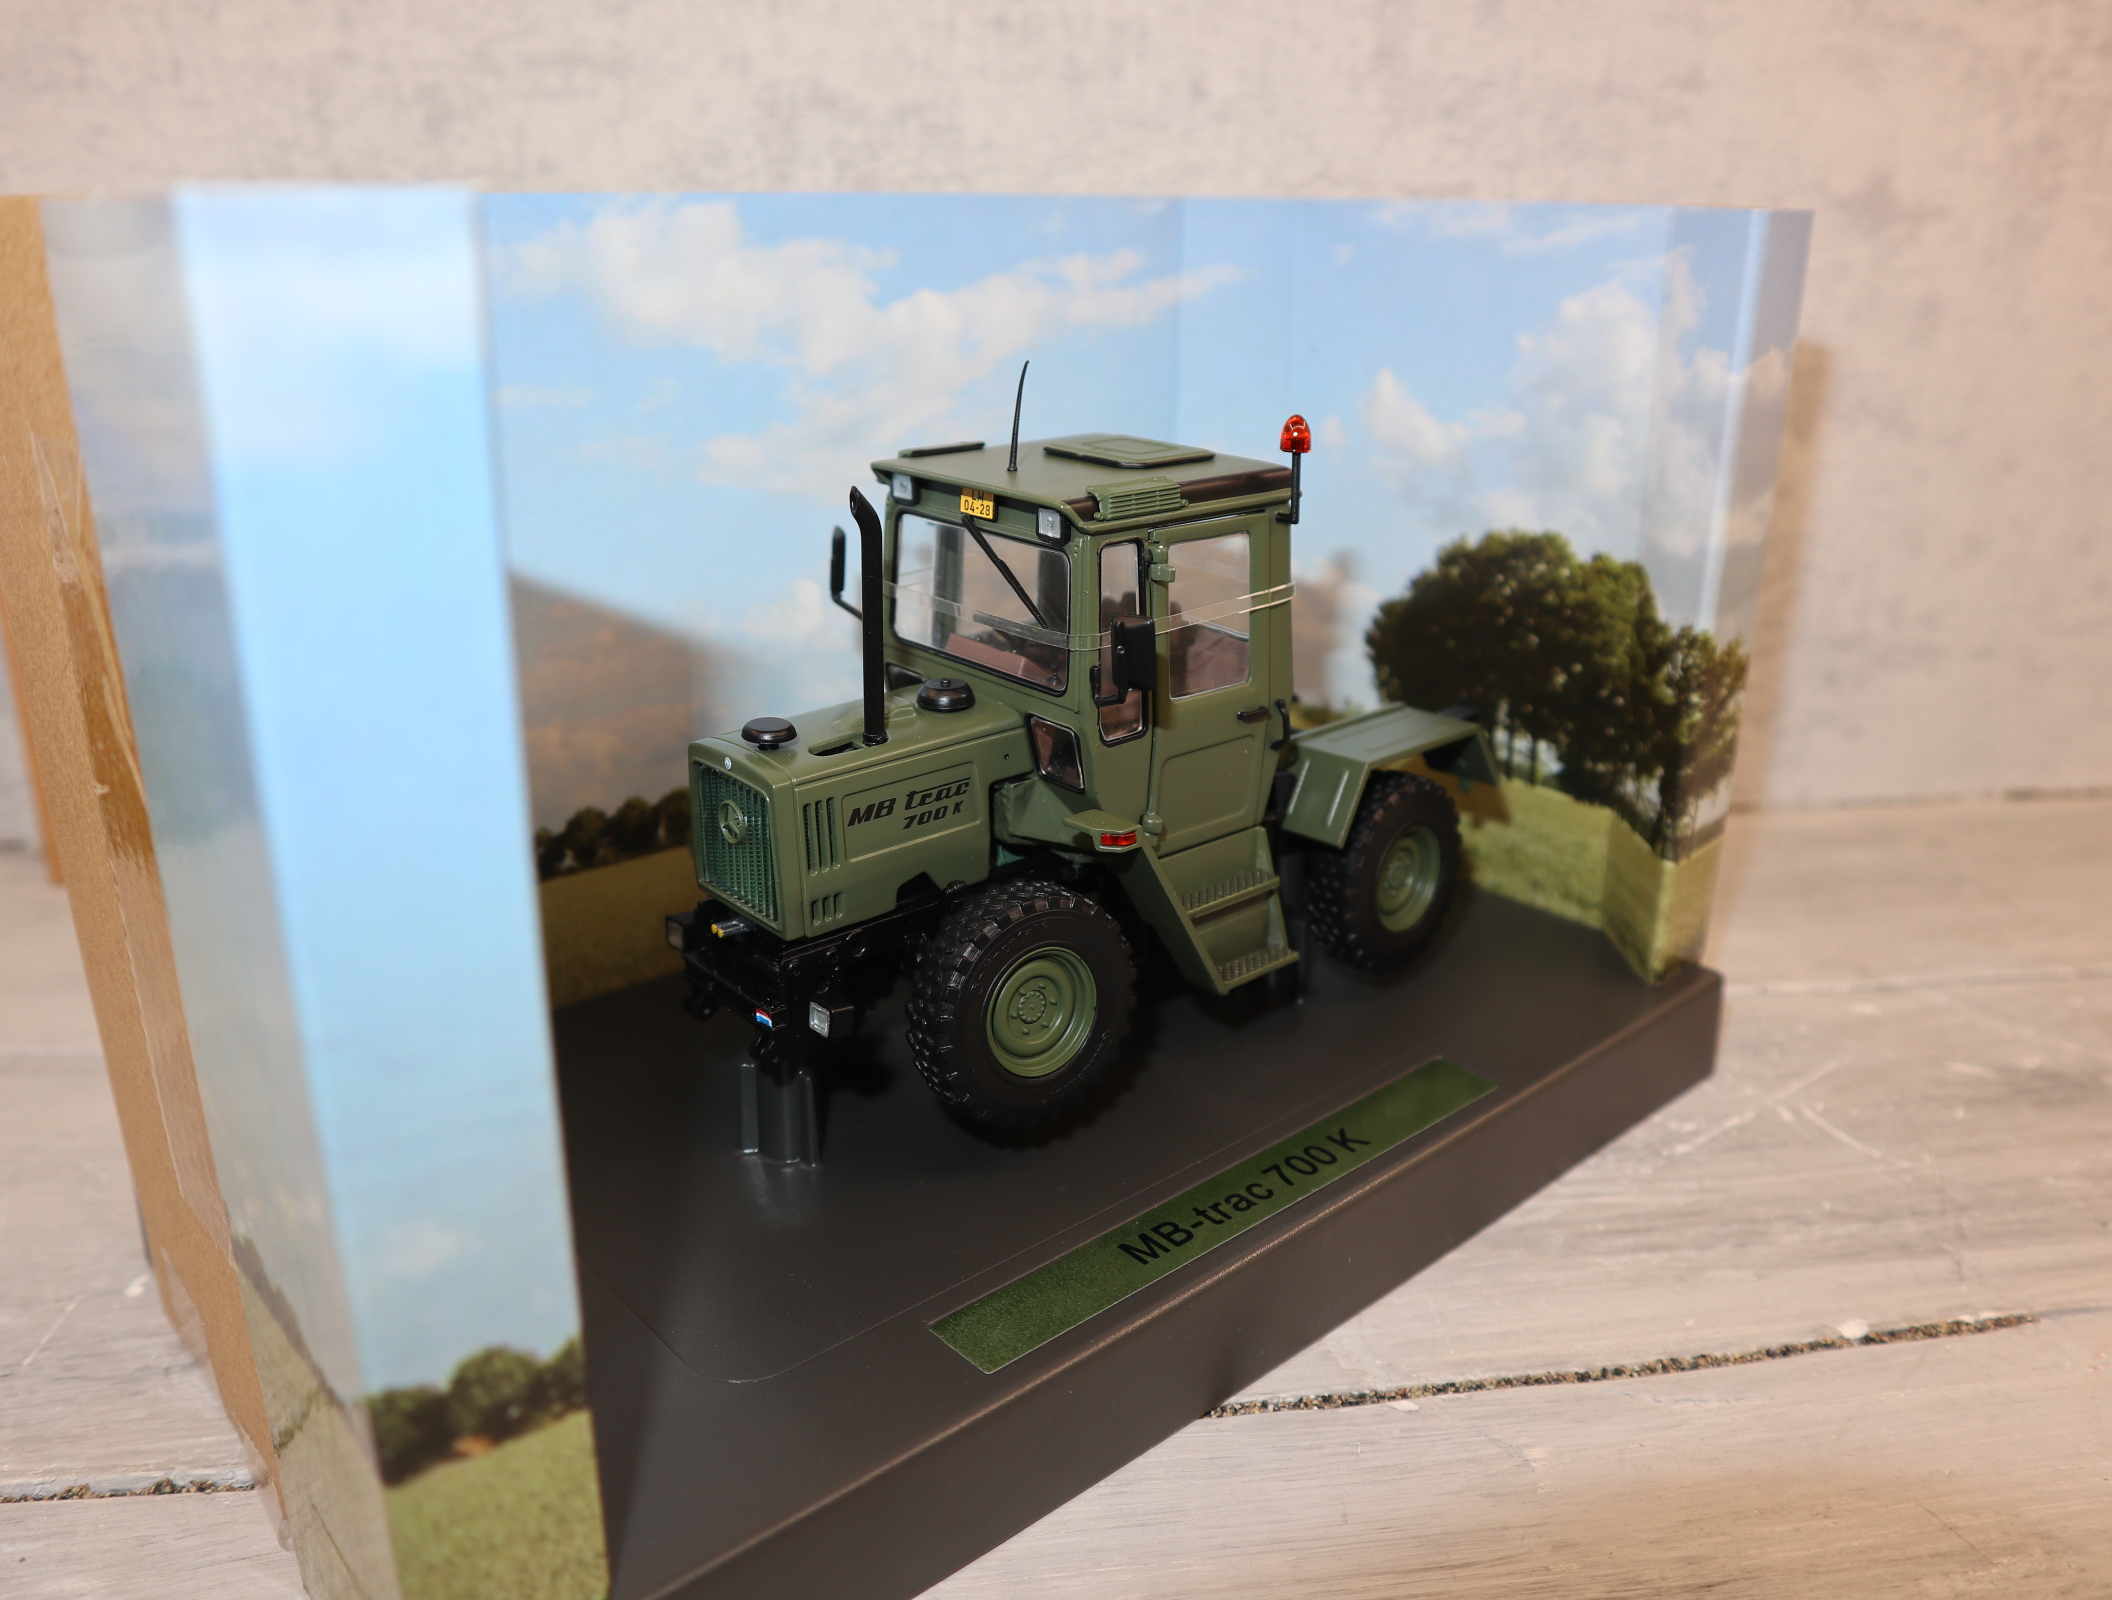 Weise Toys 2038 1:32 MB Trac 700 NL-Army oliv